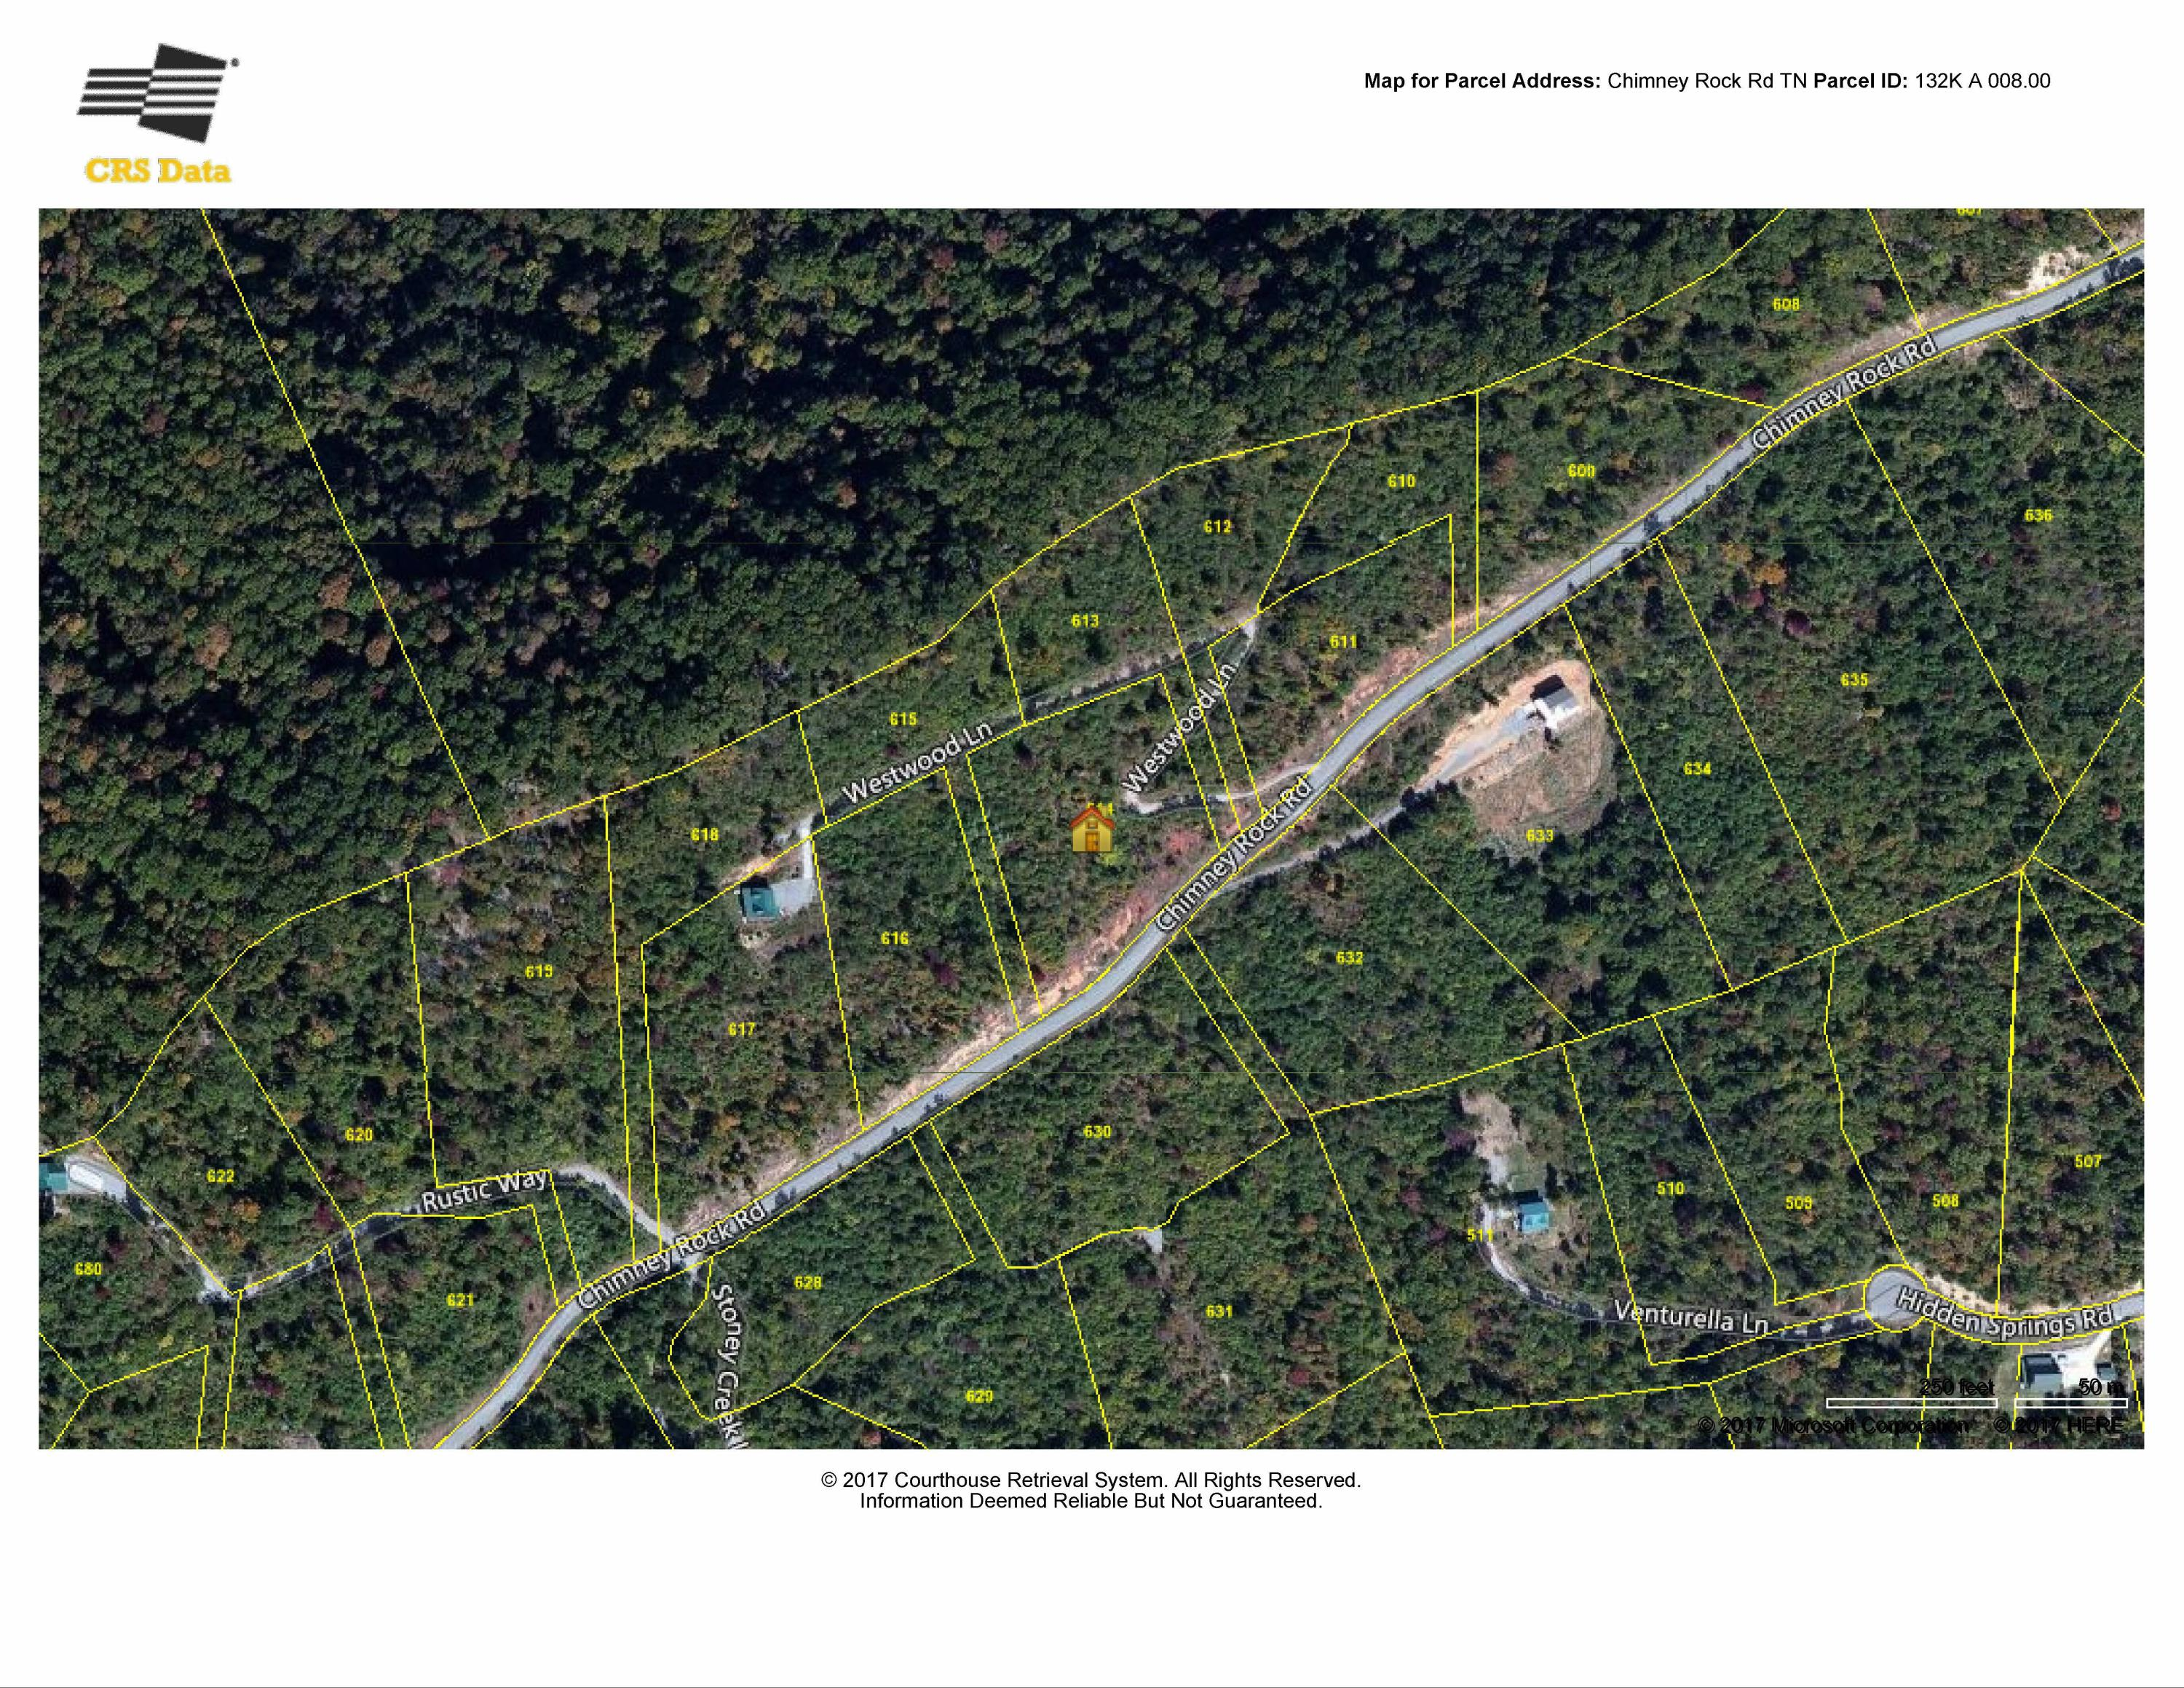 Lot 614 Chimney Rock Rd: